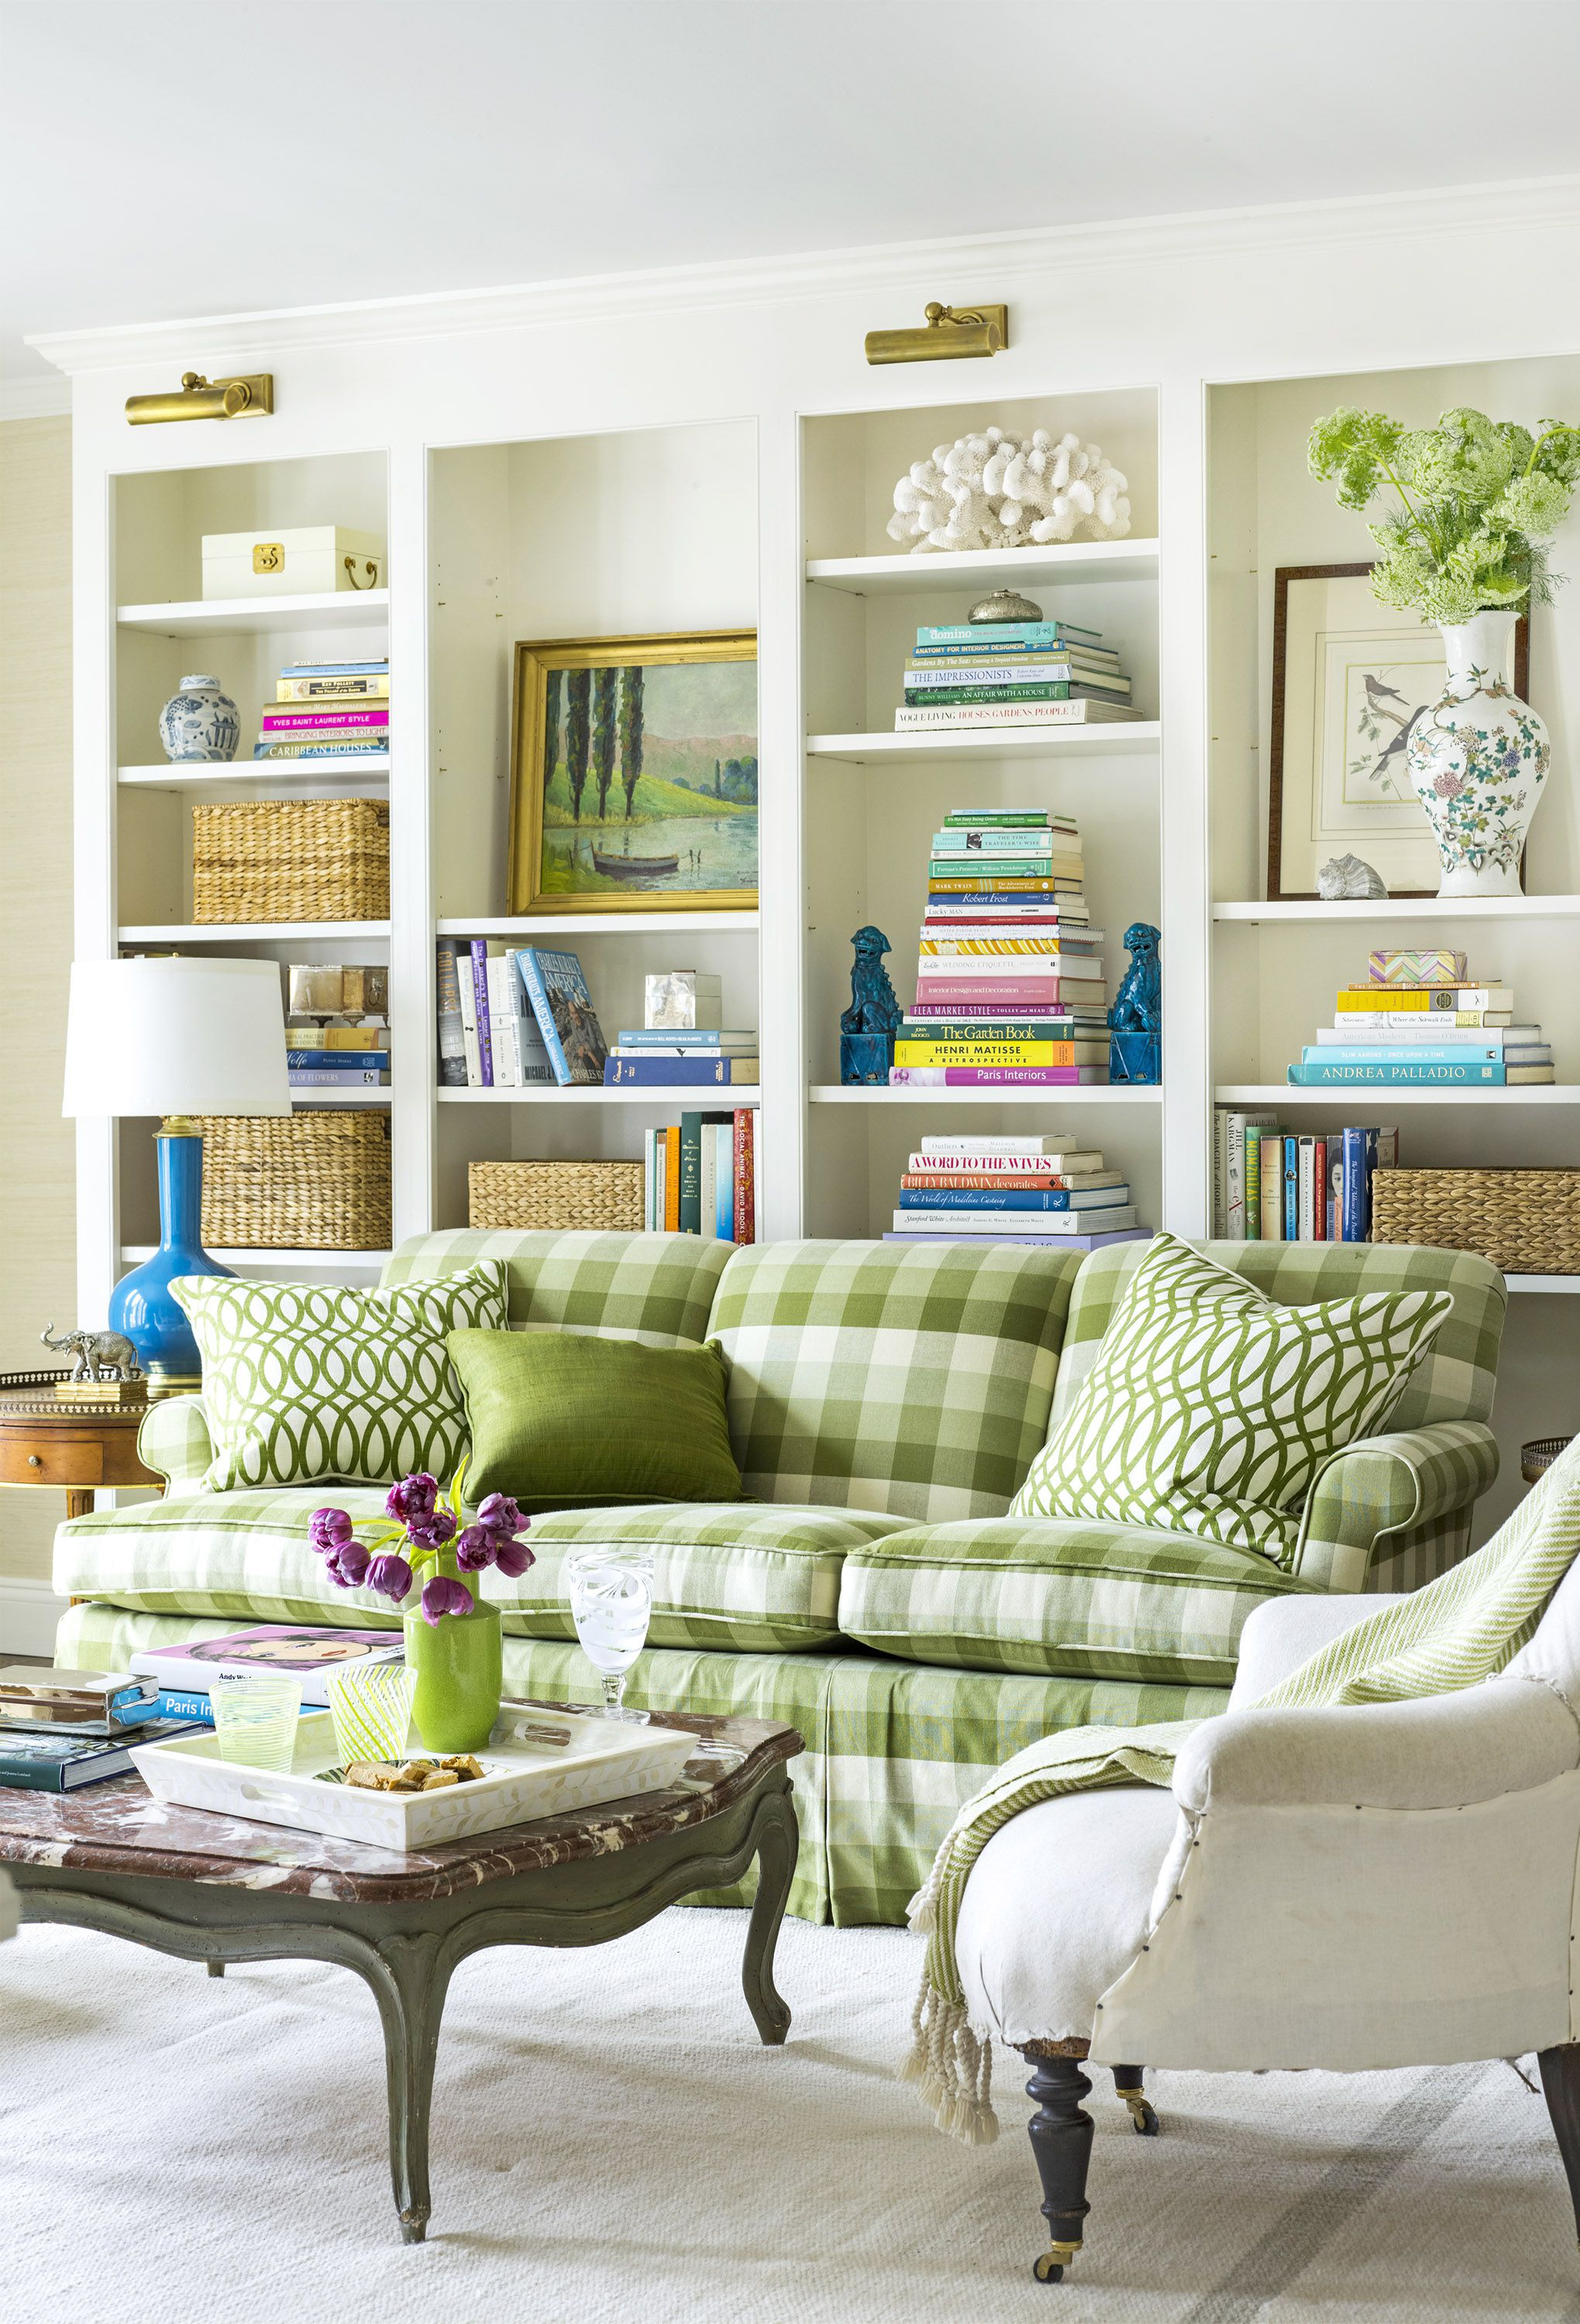 decorating with green ideas for rooms and home decor lime accent table that prove the prettiest color target coffee storage spring haven patio furniture lucite nesting tables